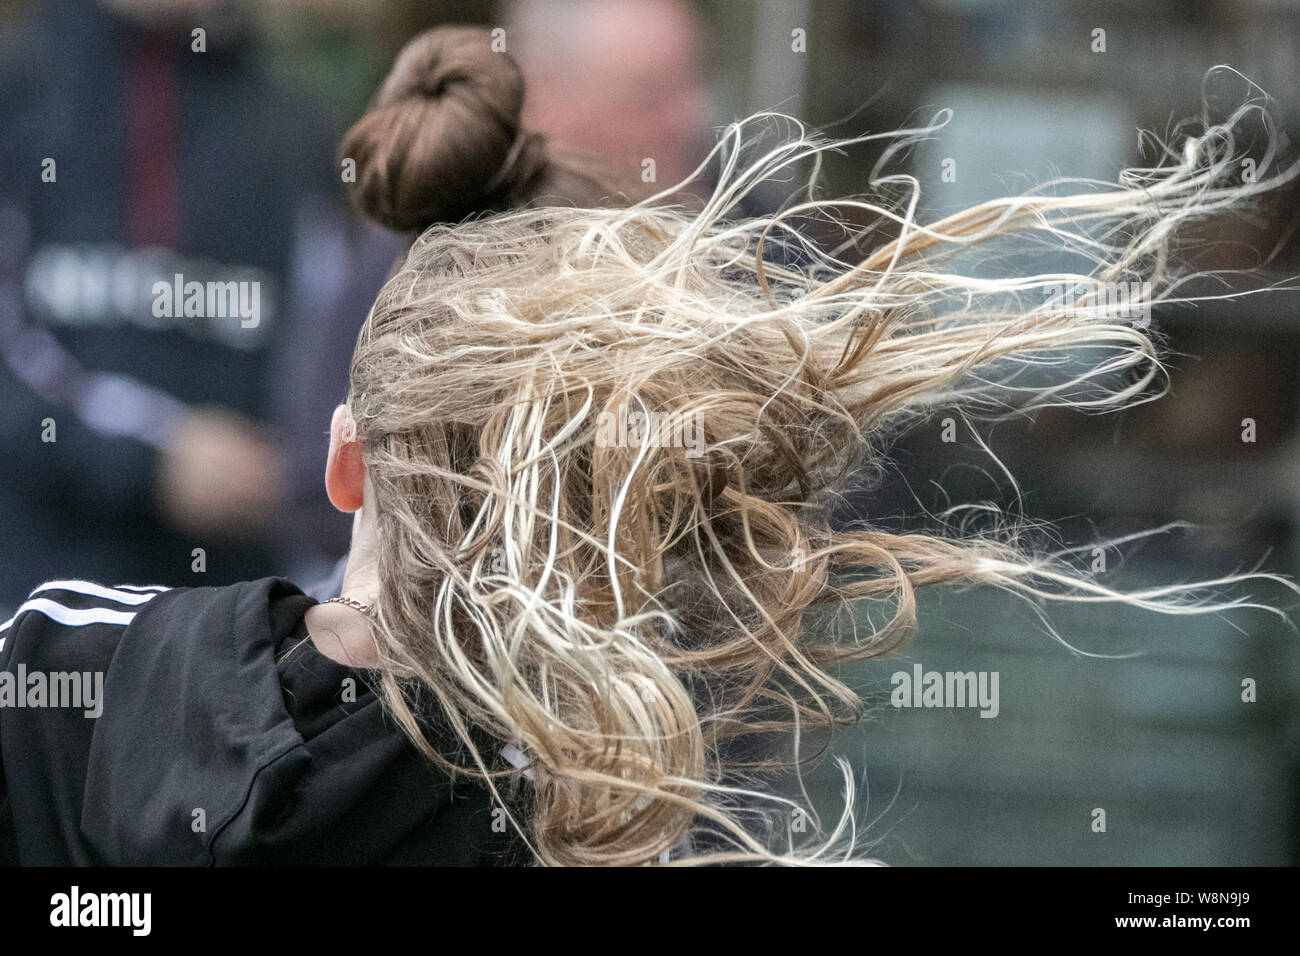 Windswept Hair Wind Blown Bad Hair Day Windy Weather Storm Stormy Day Landscape Windswept Hair Woman